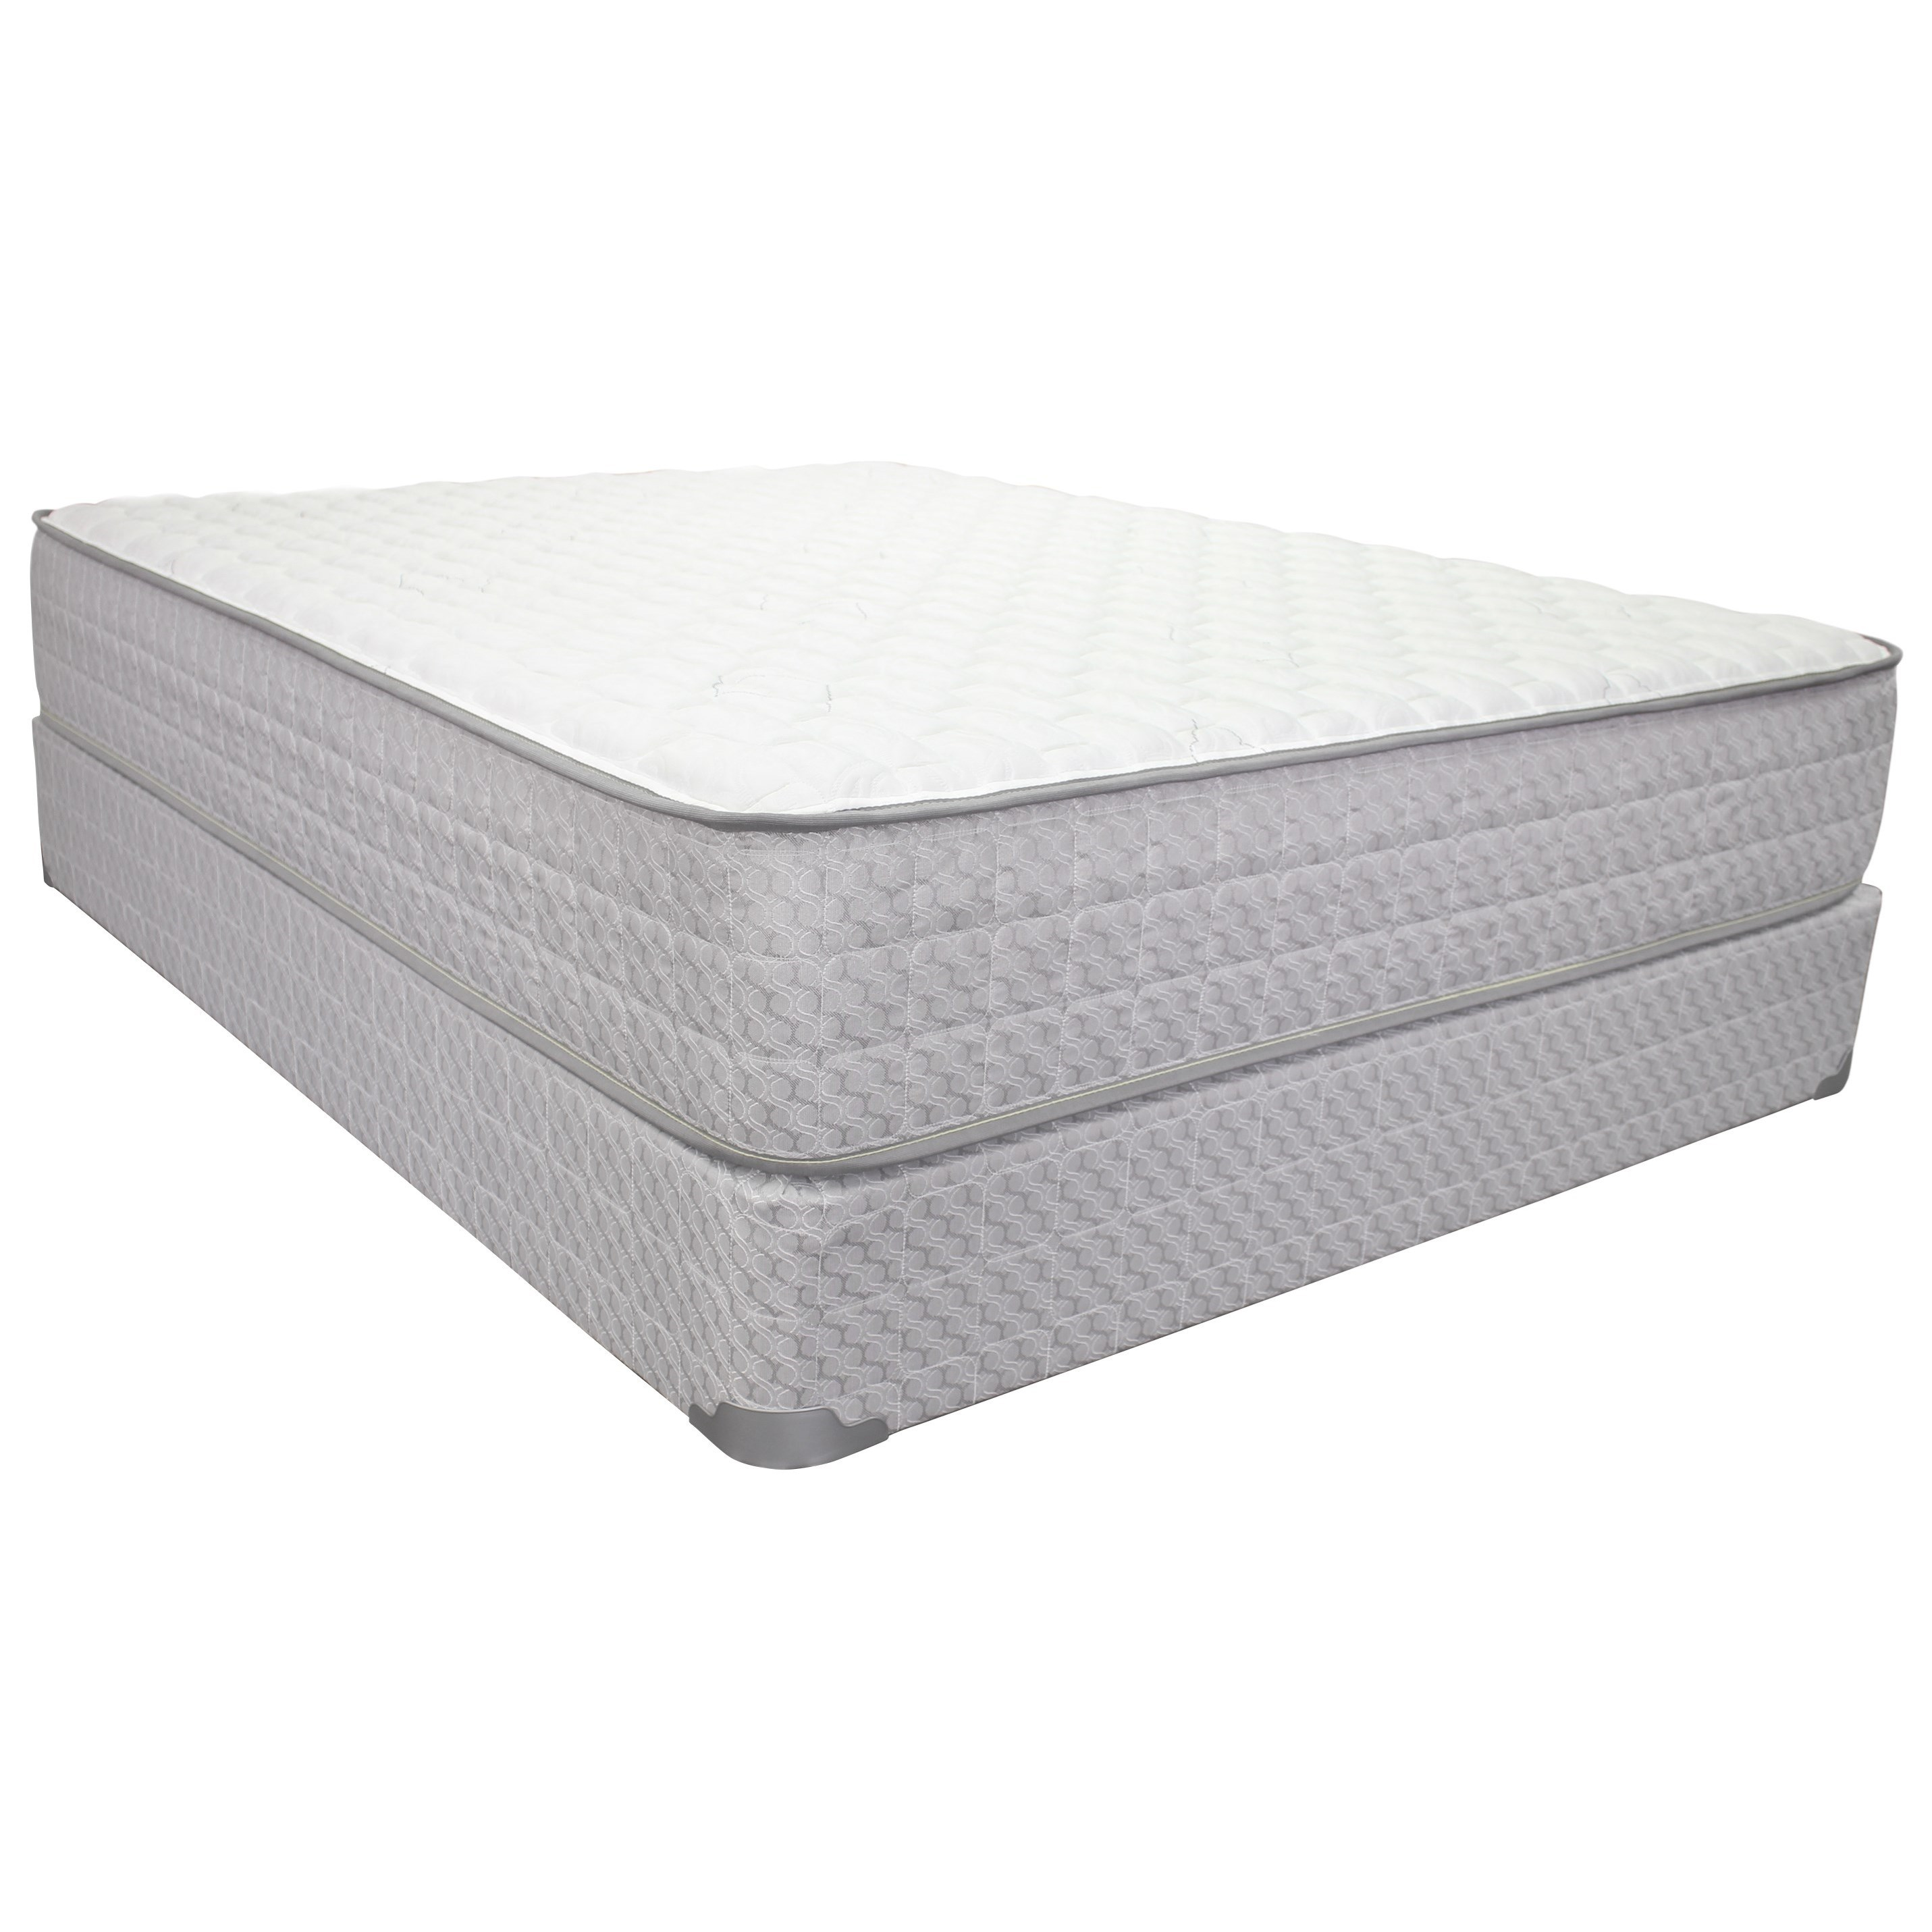 "Queen 11 1/2"" Firm Mattress Set"